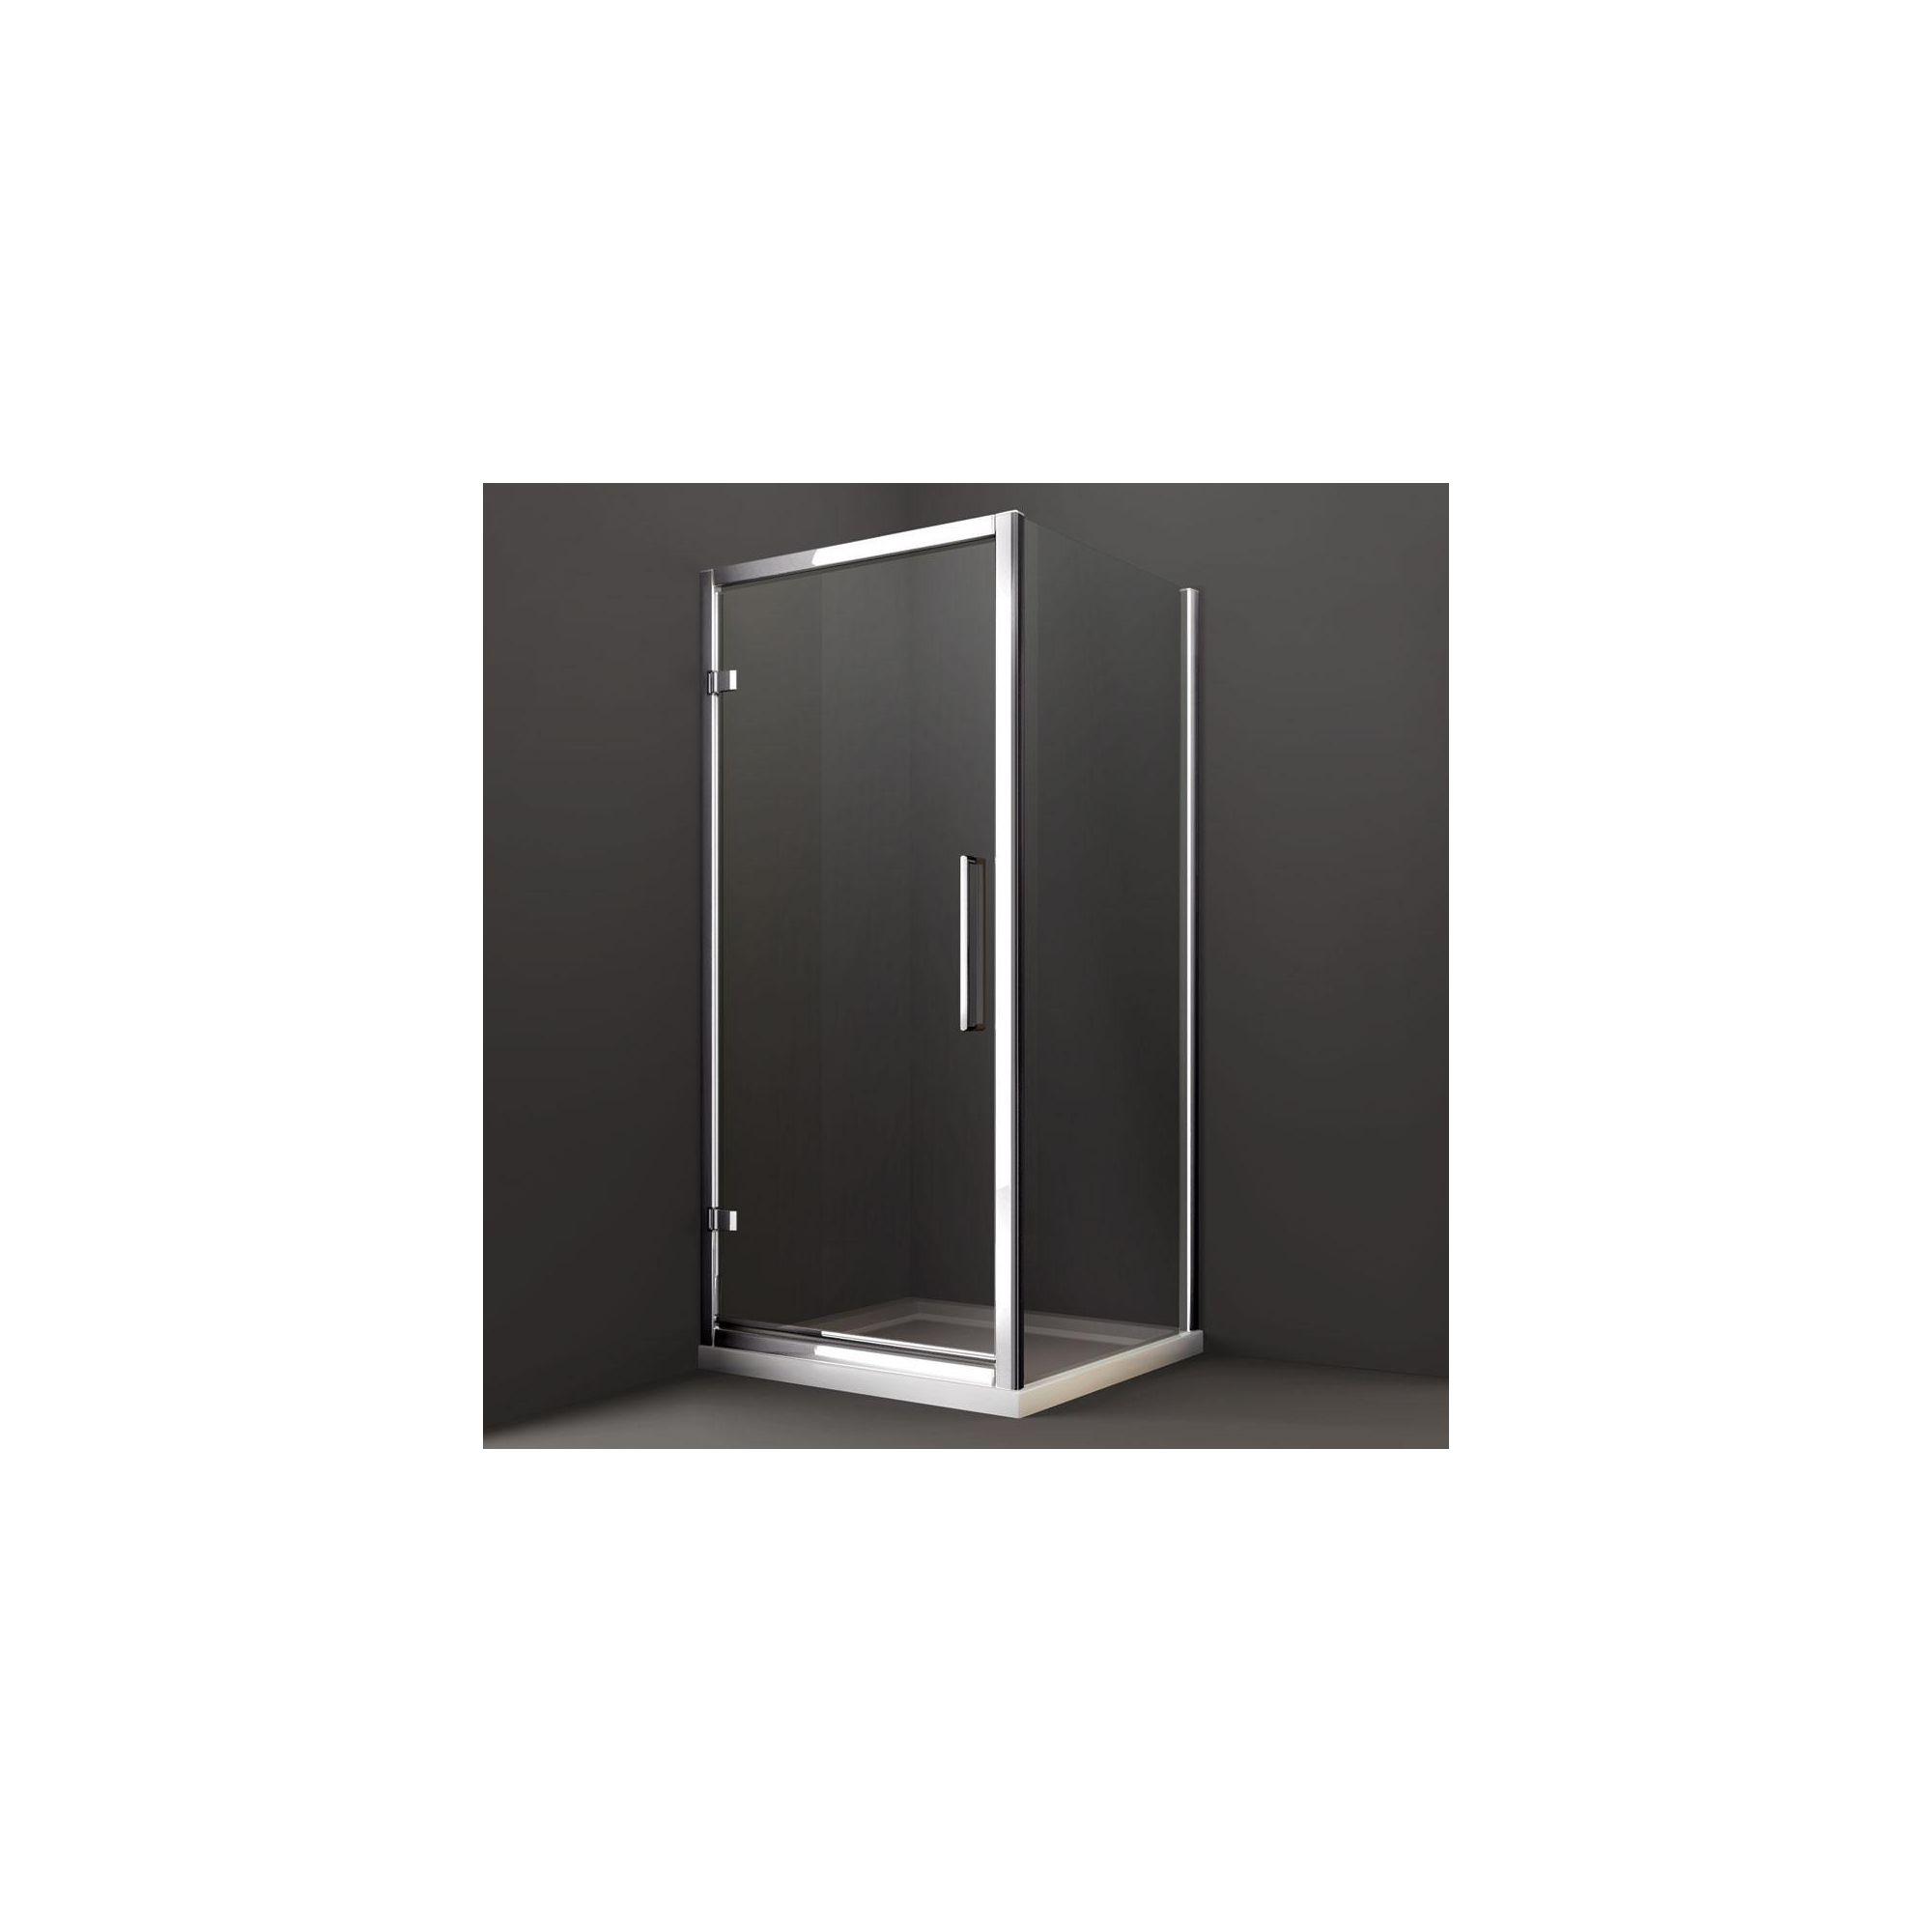 Merlyn Series 8 Hinged Shower Door, 1000mm Wide, Chrome Frame, 8mm Glass at Tesco Direct